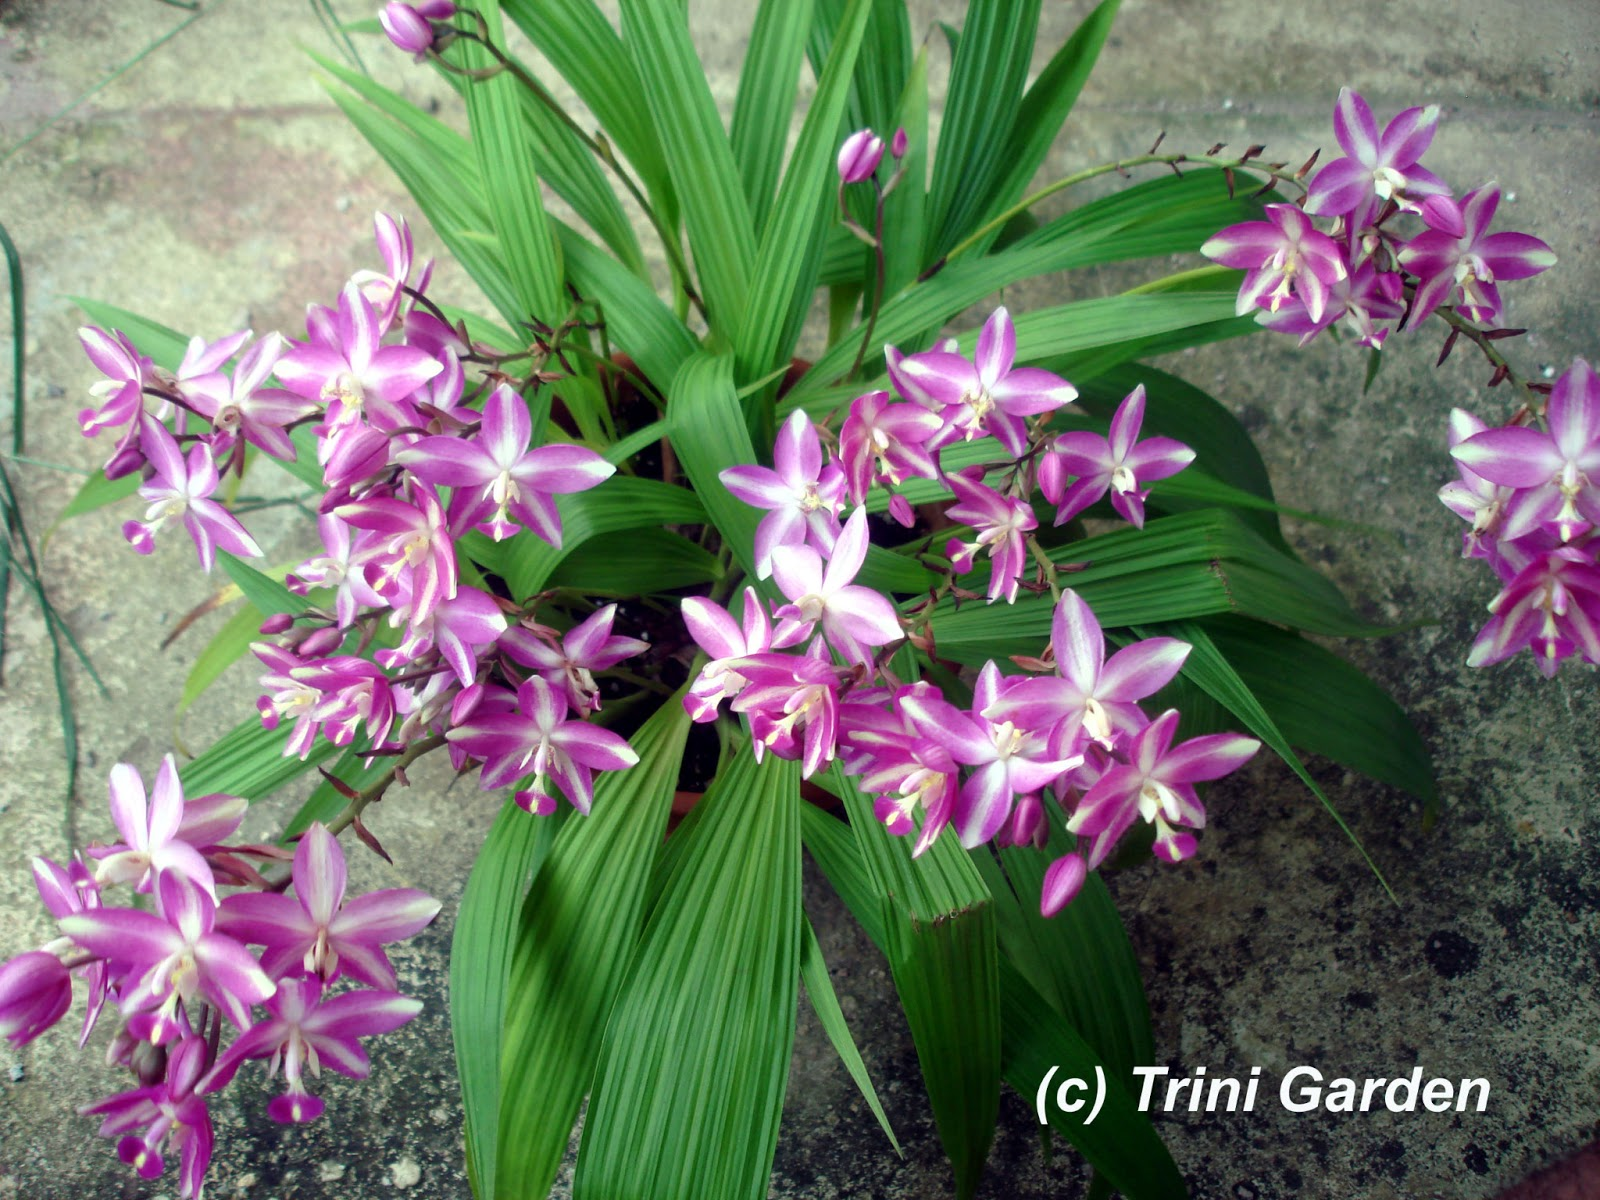 Trini Garden Purple And White Spathoglottis